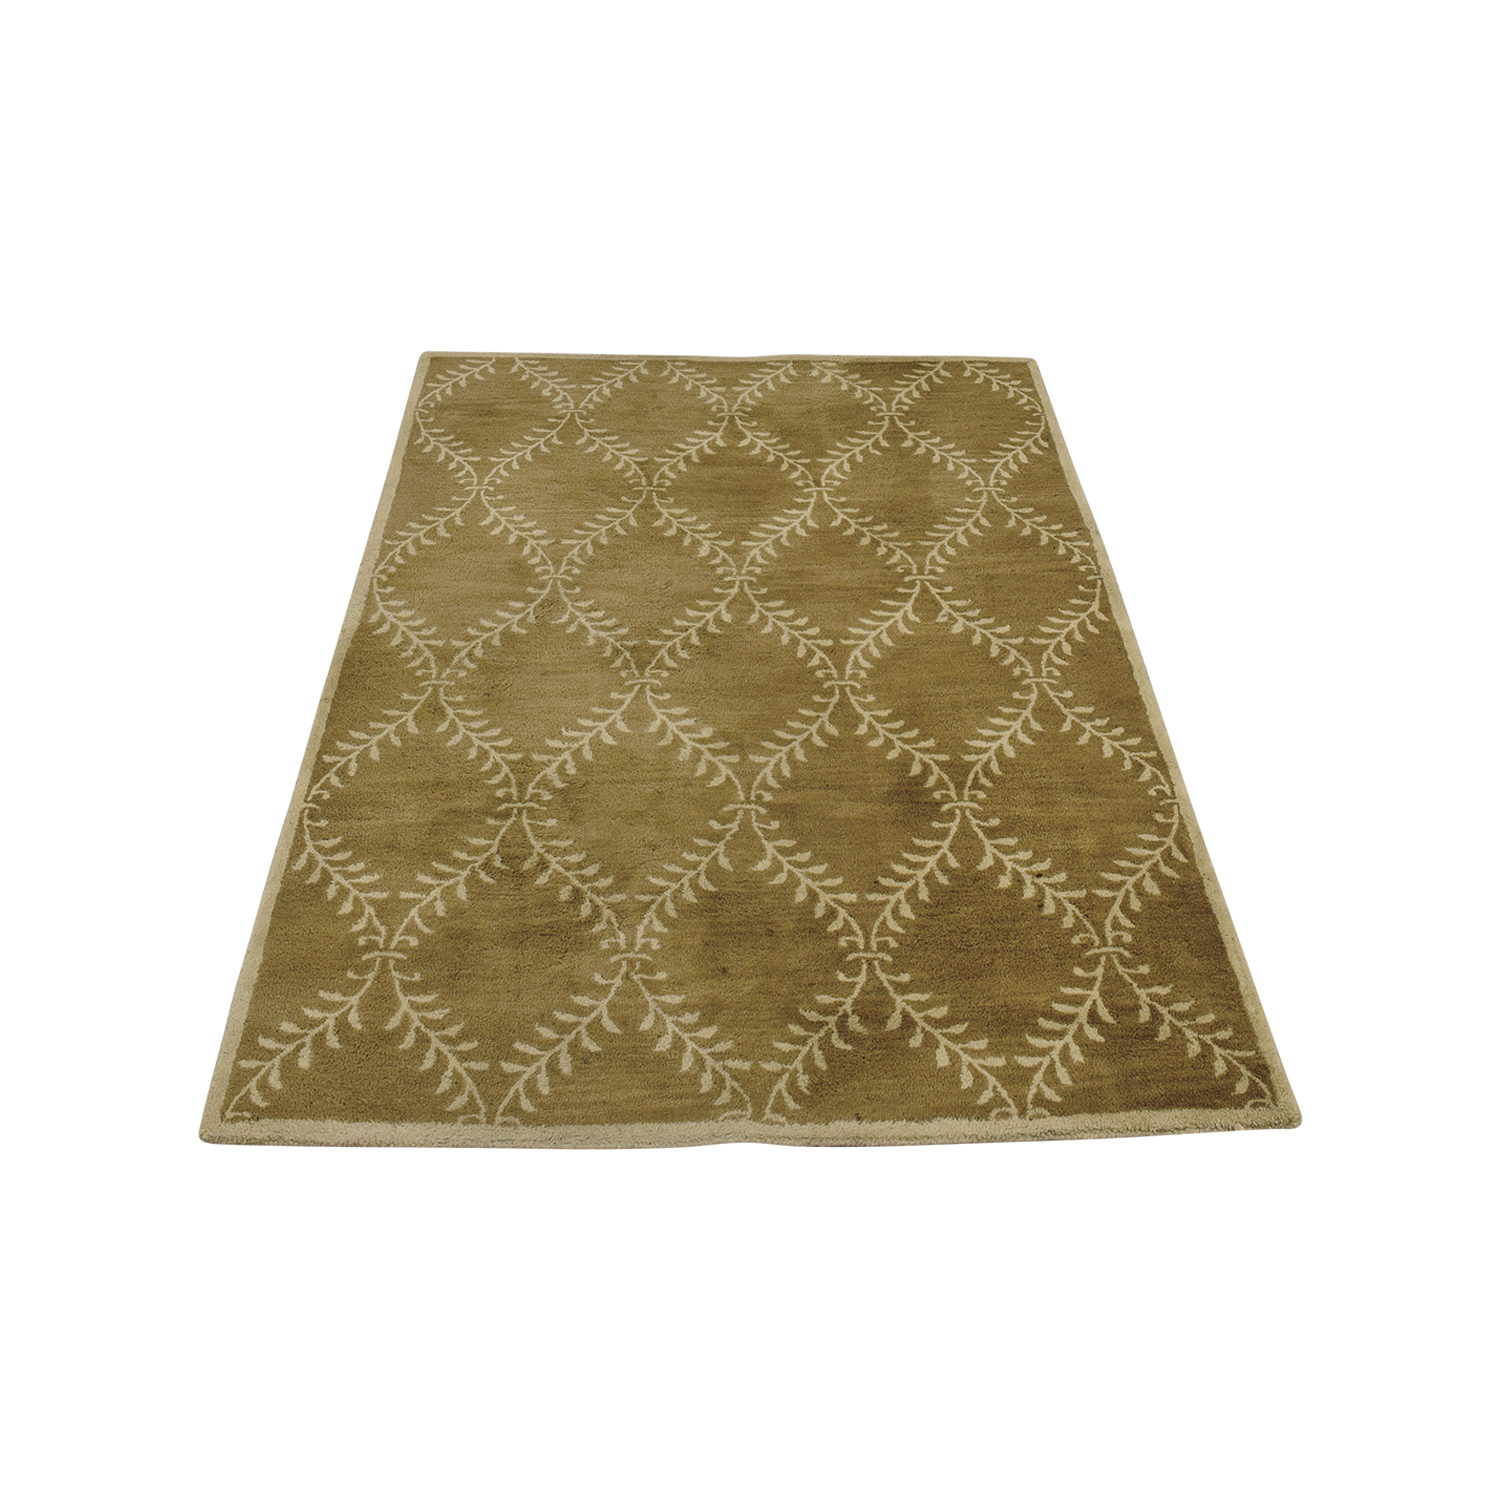 Pottery Barn Pottery Barn Beige Lattice Rug